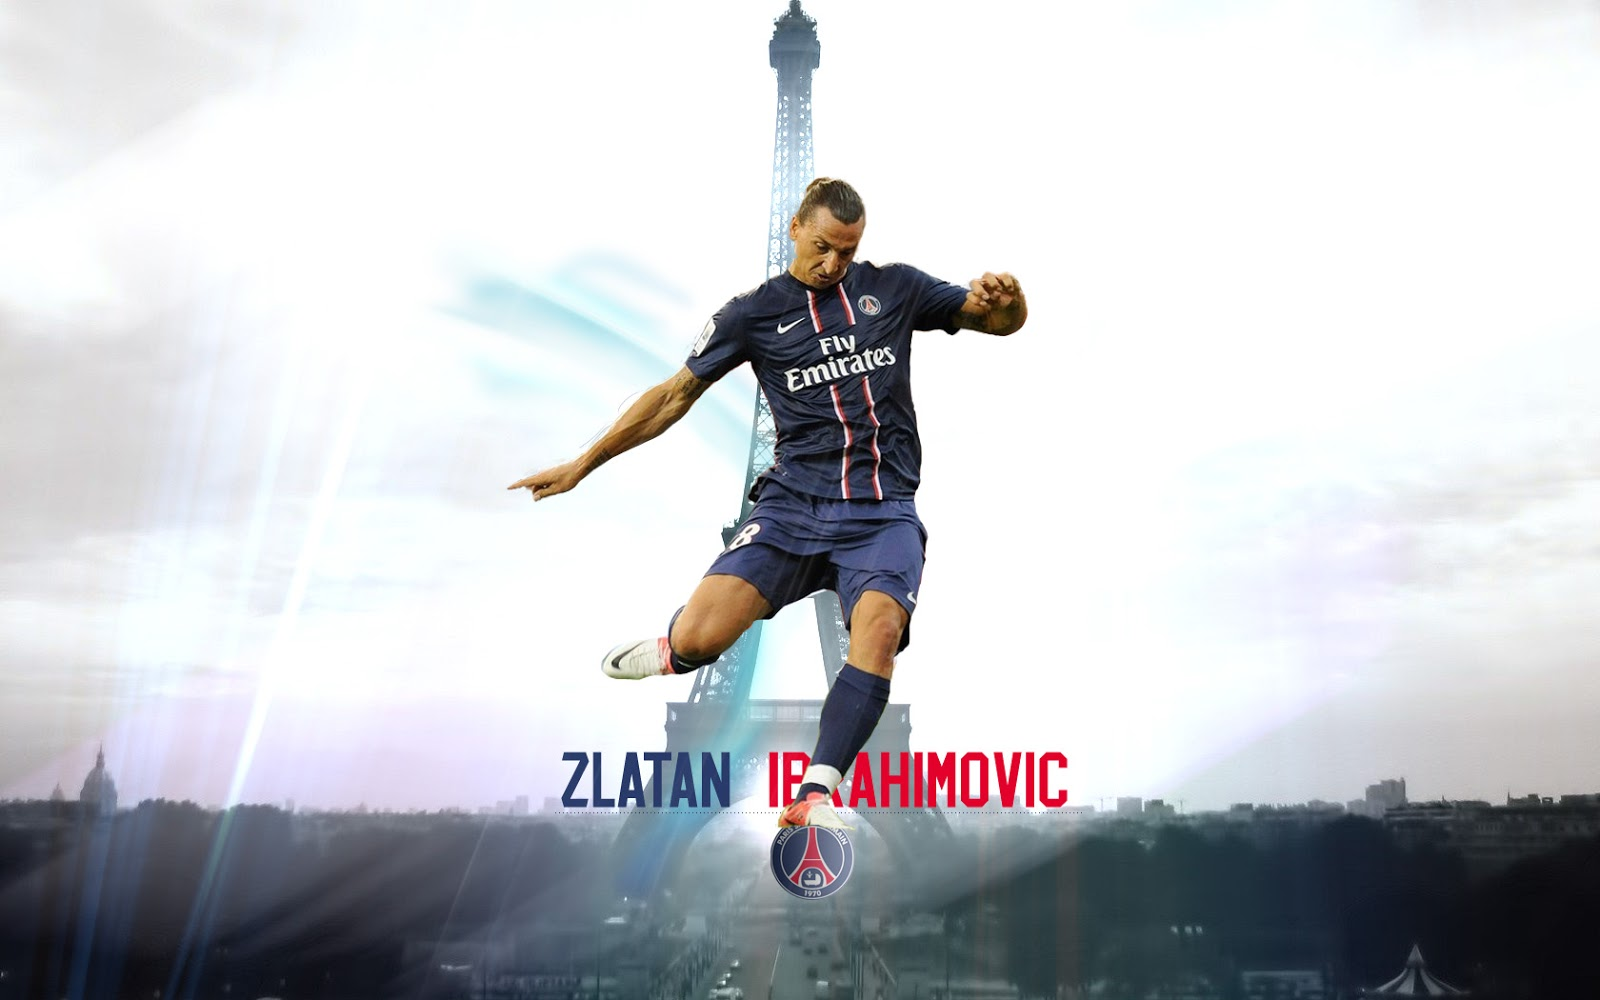 zlatan ibrahimovic new original wallpaper it 39 s all about